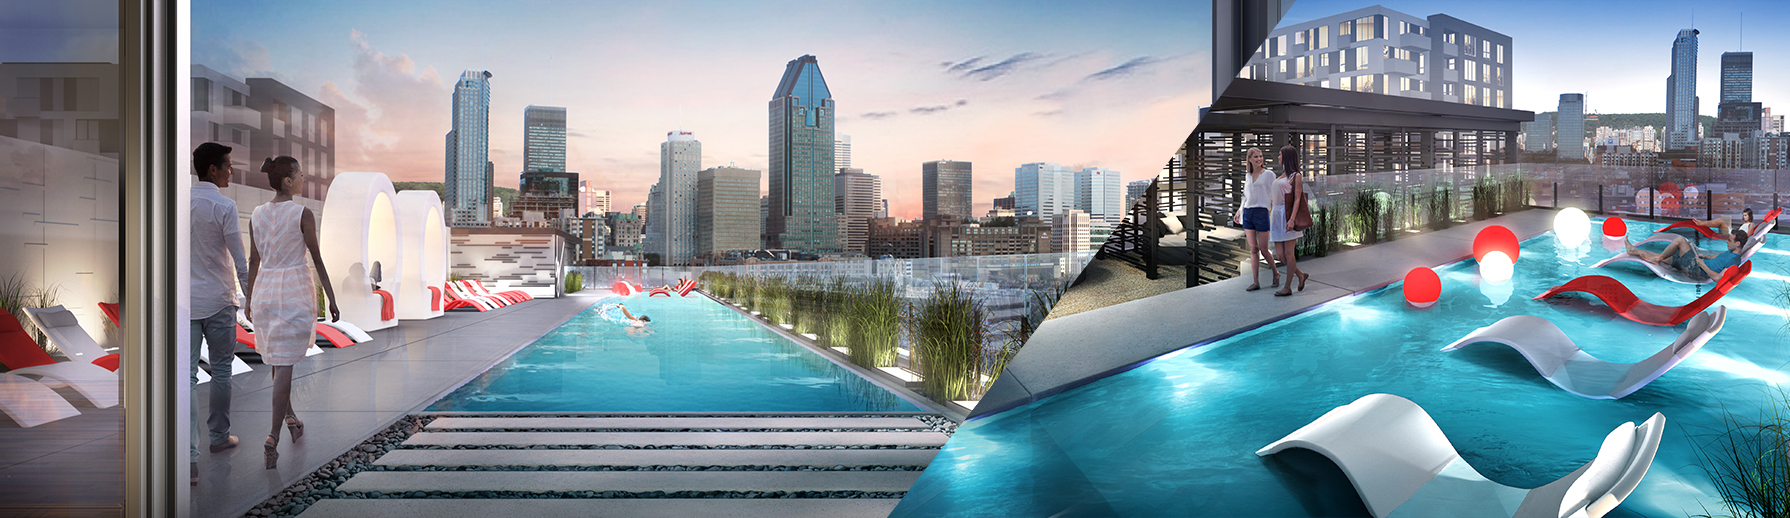 4-griffintown-district-sur-parc-piscine-exterieure1